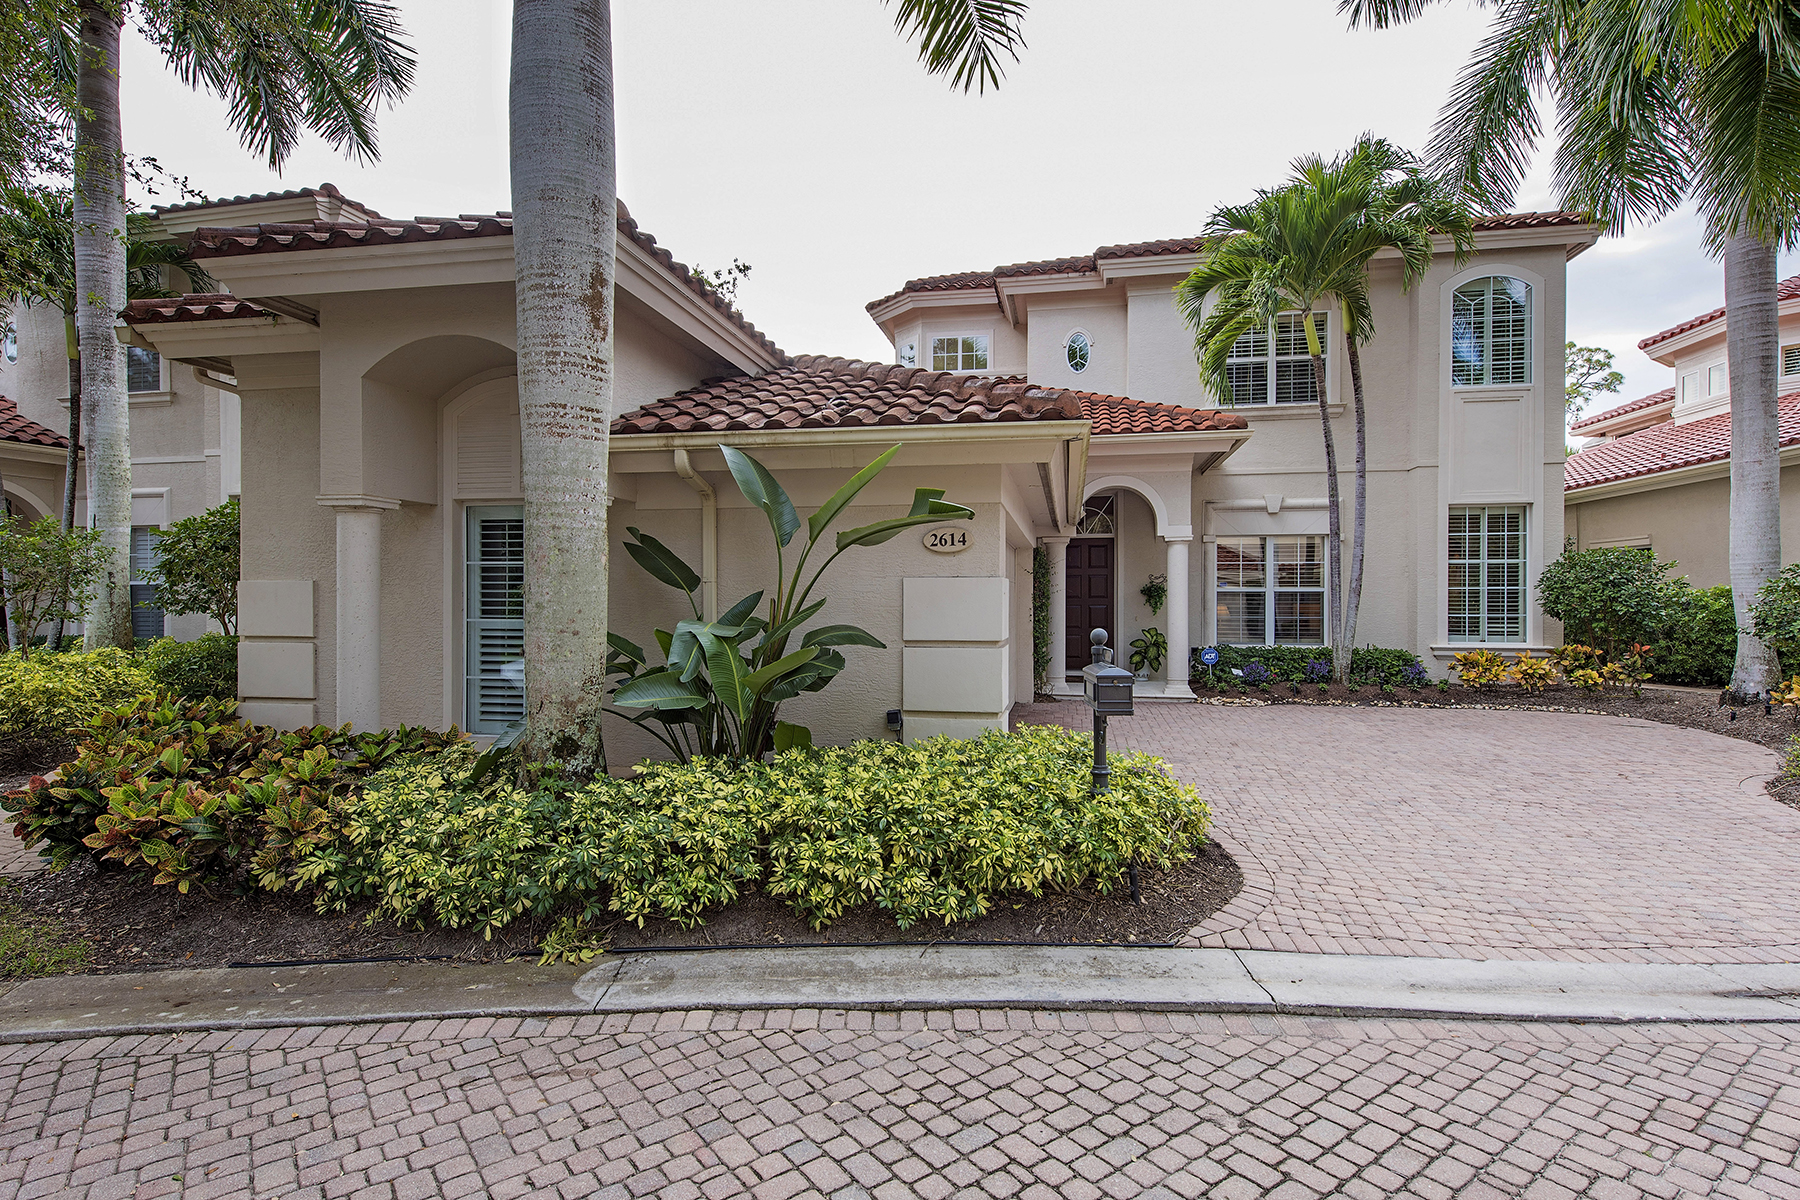 Single Family Home for Sale at GREY OAKS - L'ERMITAGE AT GREY OAKS 2614 Lermitage Ln, Naples, Florida 34105 United States